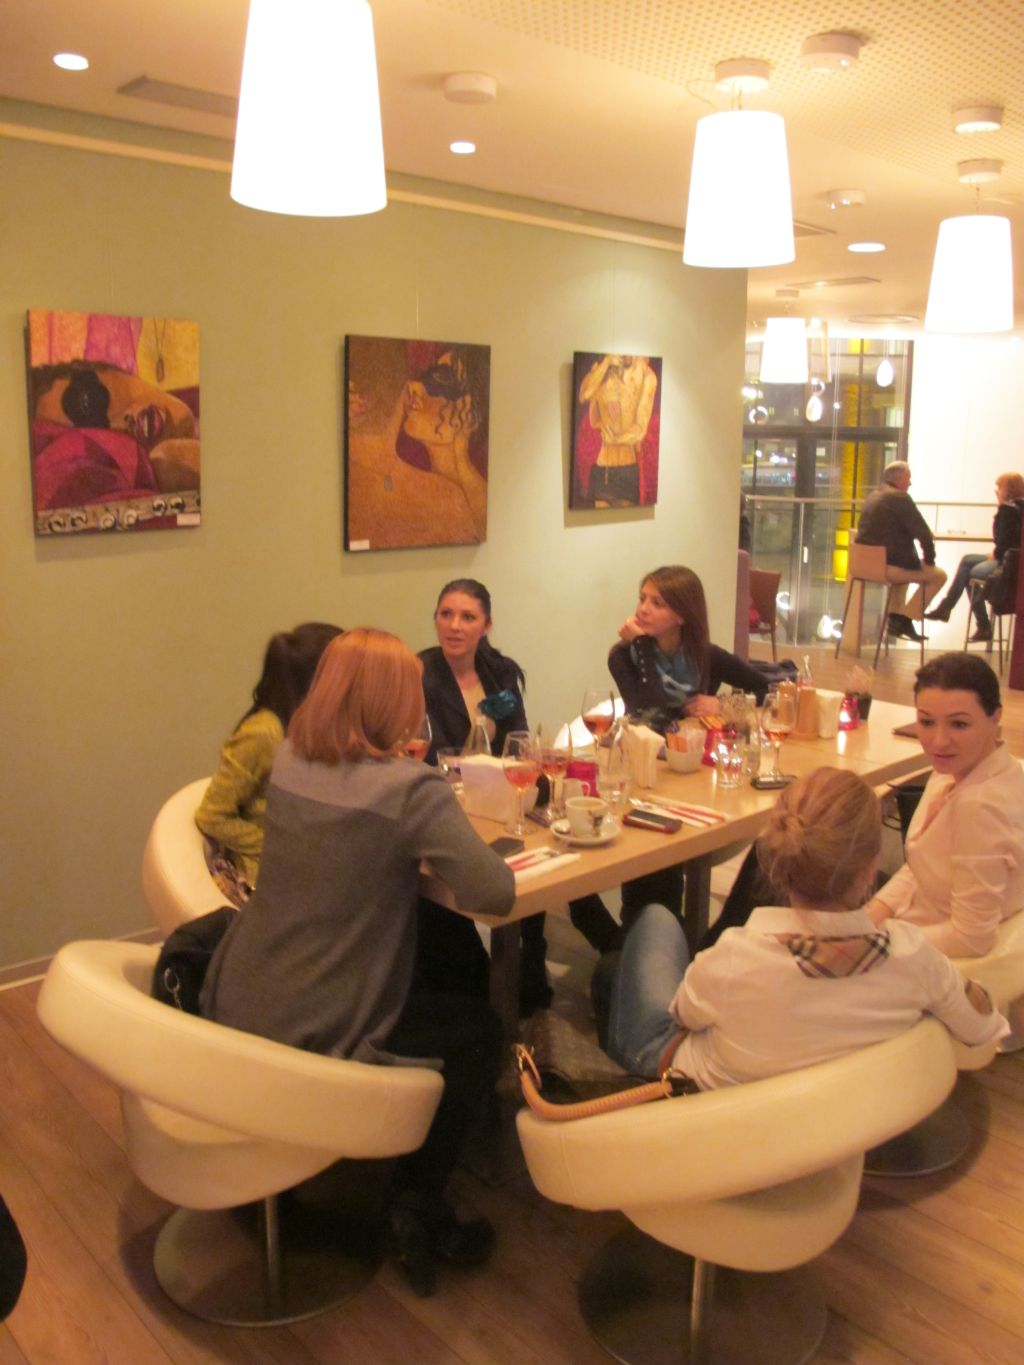 Picturile lui Orly Yanay expuse la Reader's Cafe in expozitia Wanted